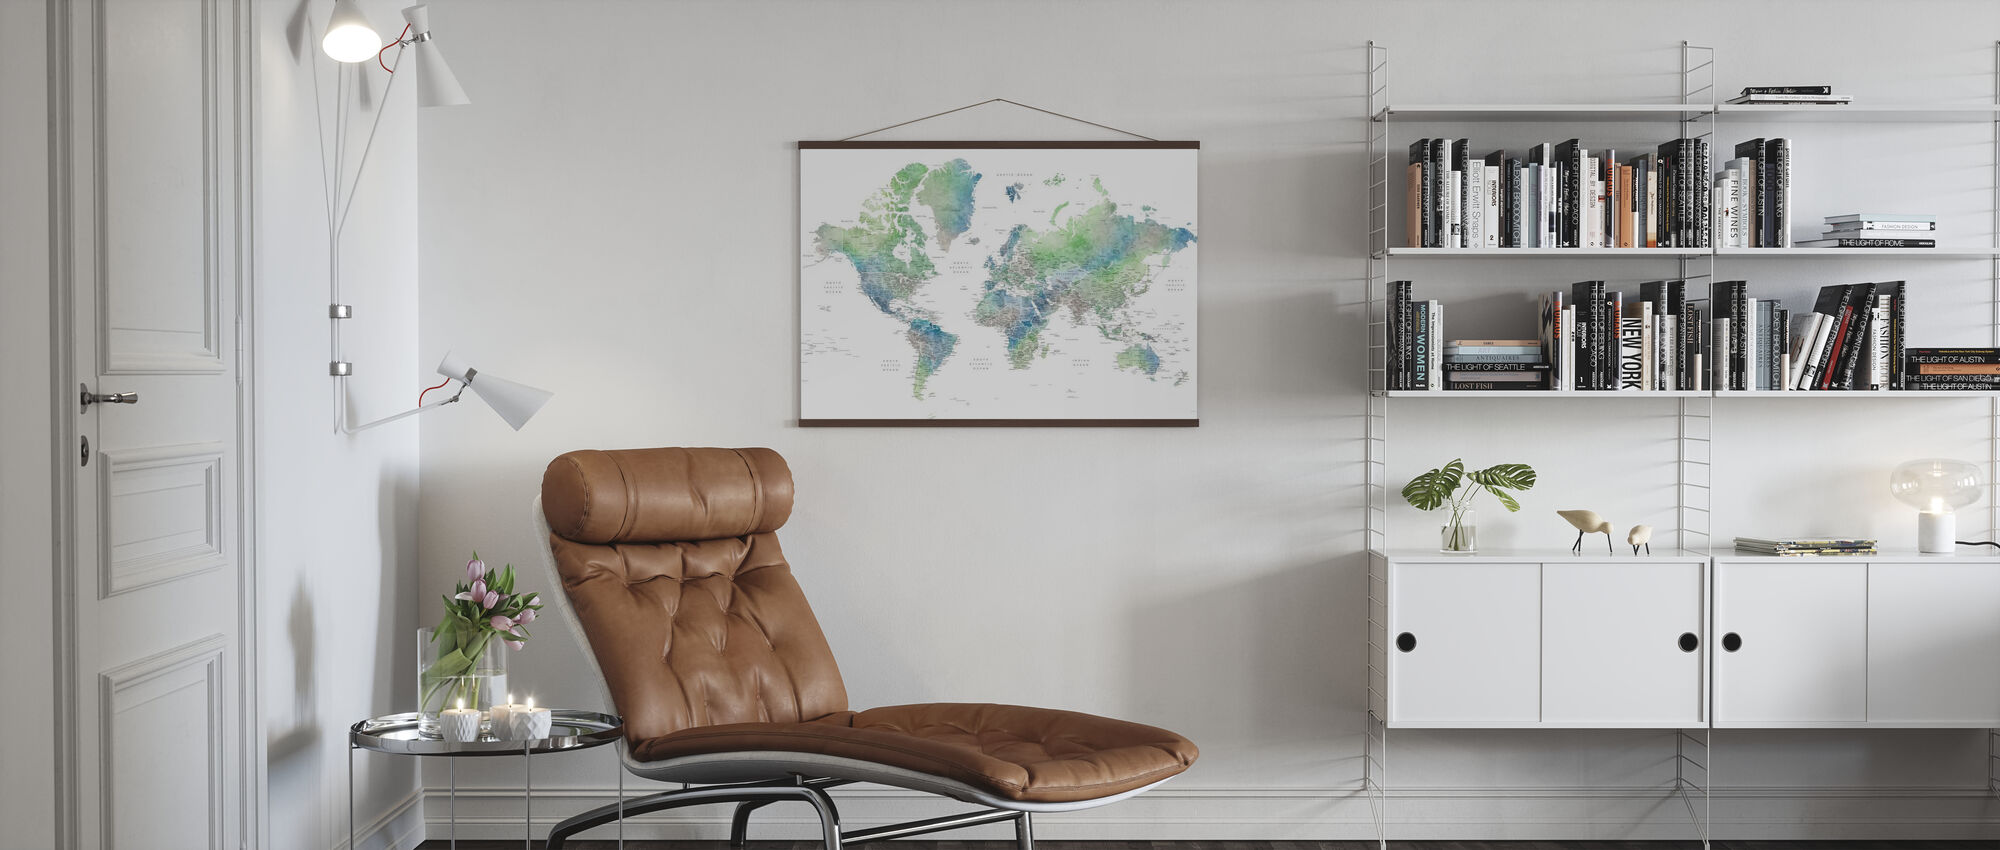 World Map with Cities - Poster - Living Room